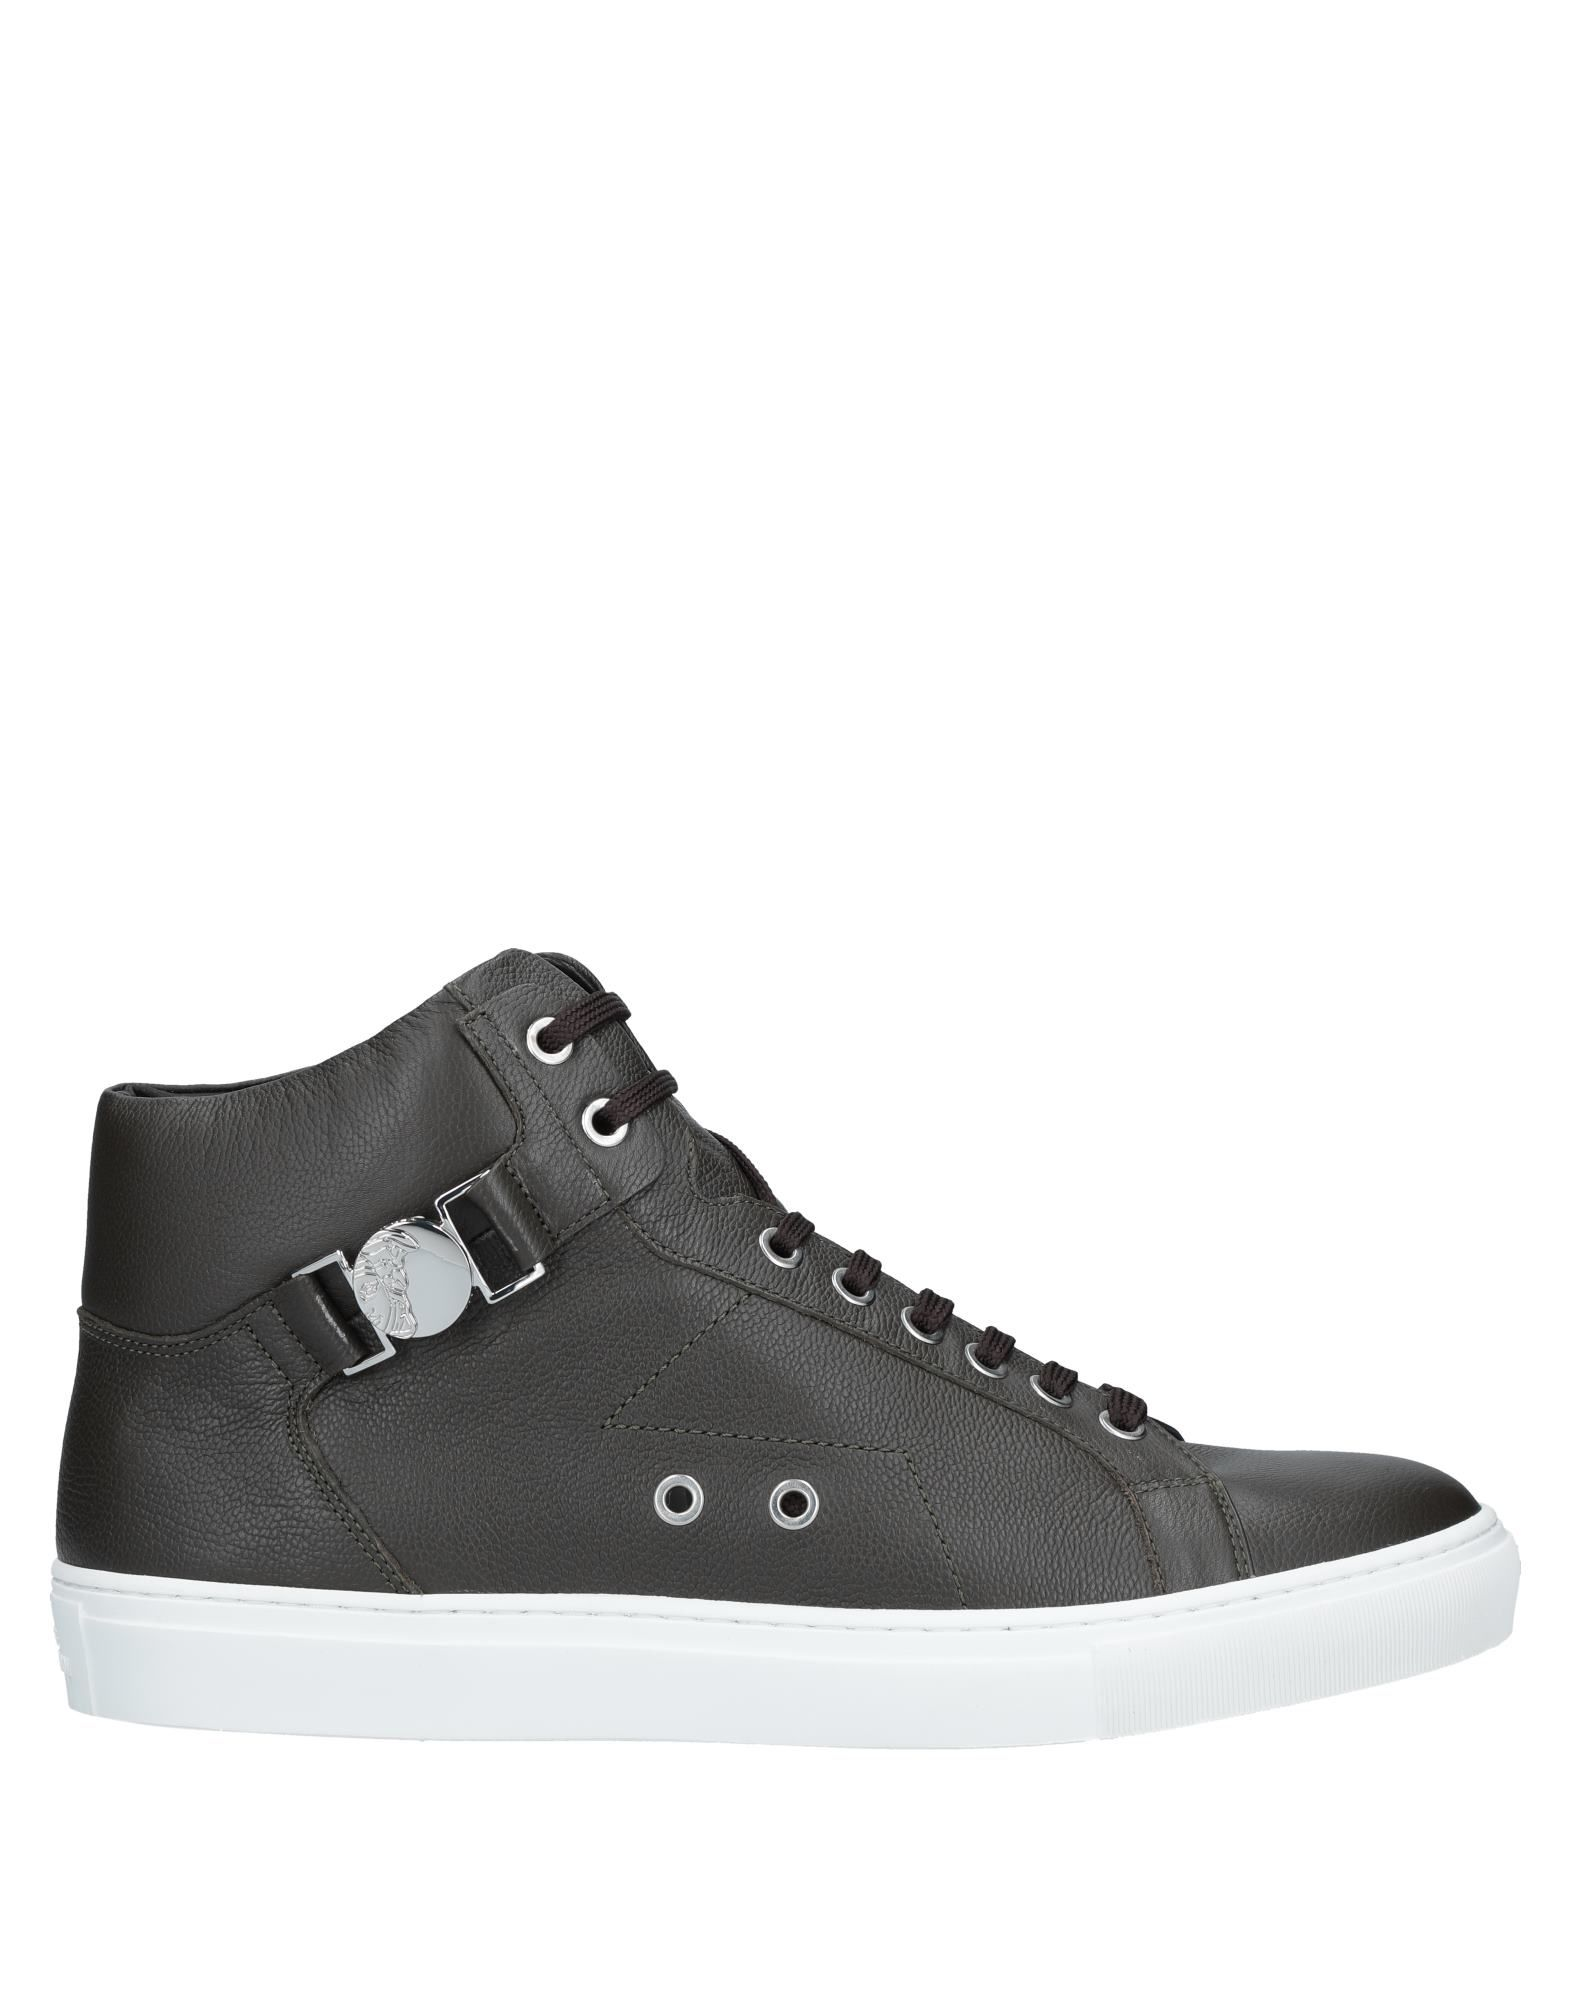 Versace on Collection Sneakers - Men Versace Collection Sneakers online on Versace  Australia - 11528632GX 14e336